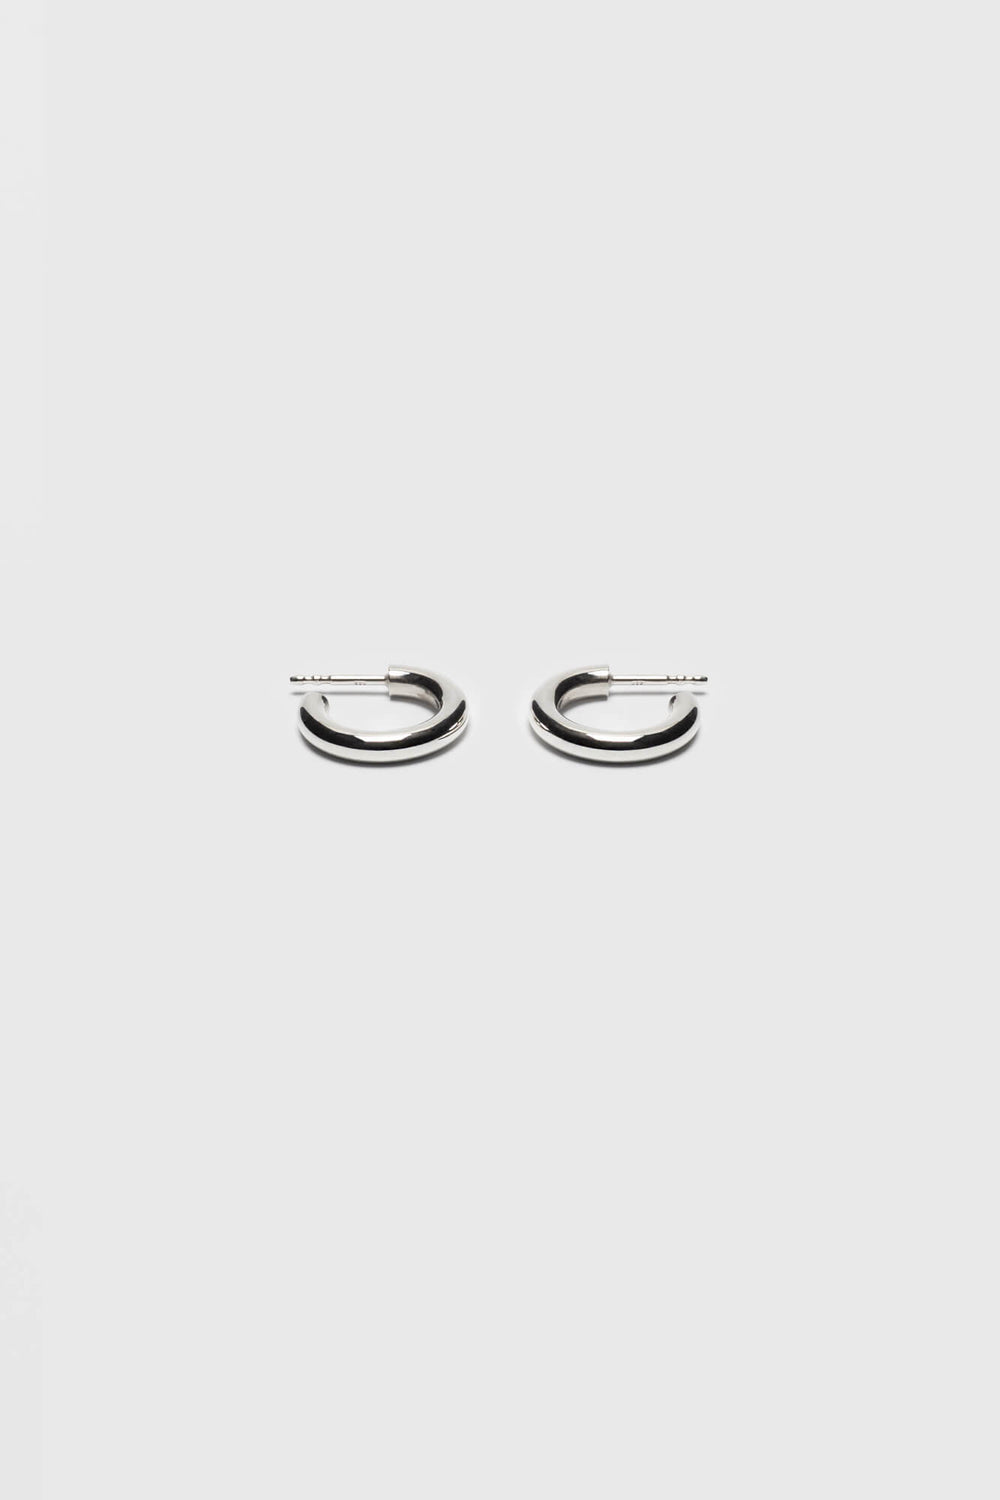 Small hoop earrings made of a bold silver wire. Fine jewelry handmade in Berlin.